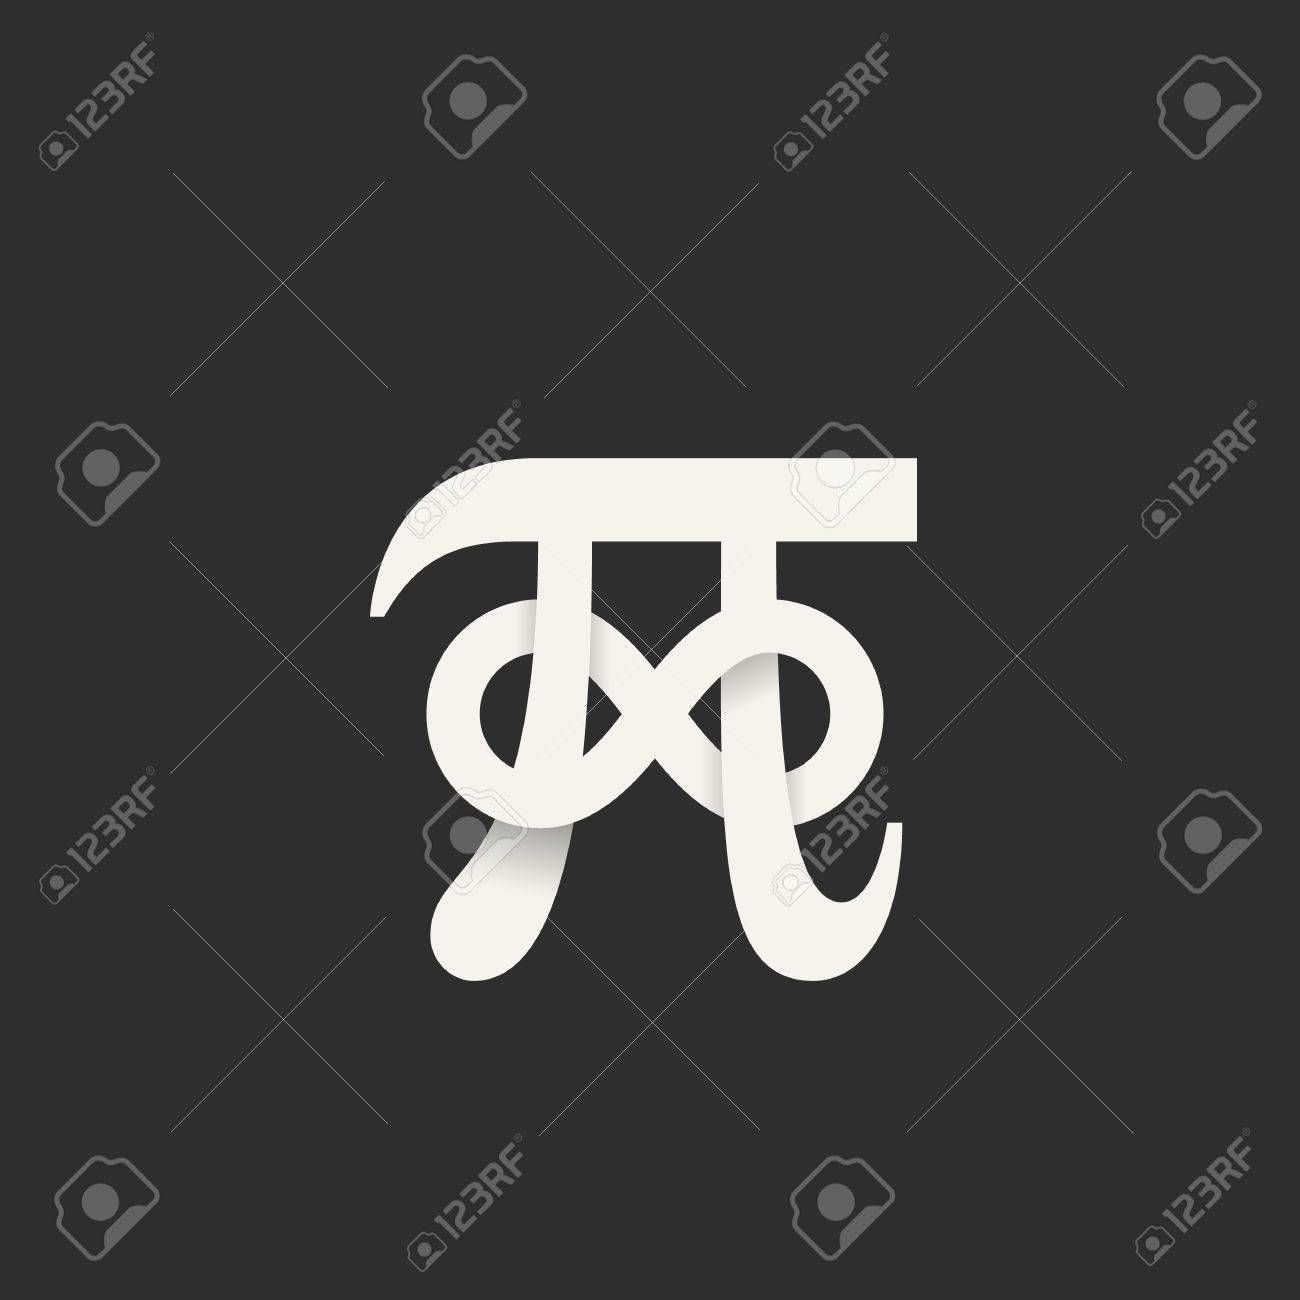 Pi Symbol With Infinity Sign Abstract Icon Label Or Illustration